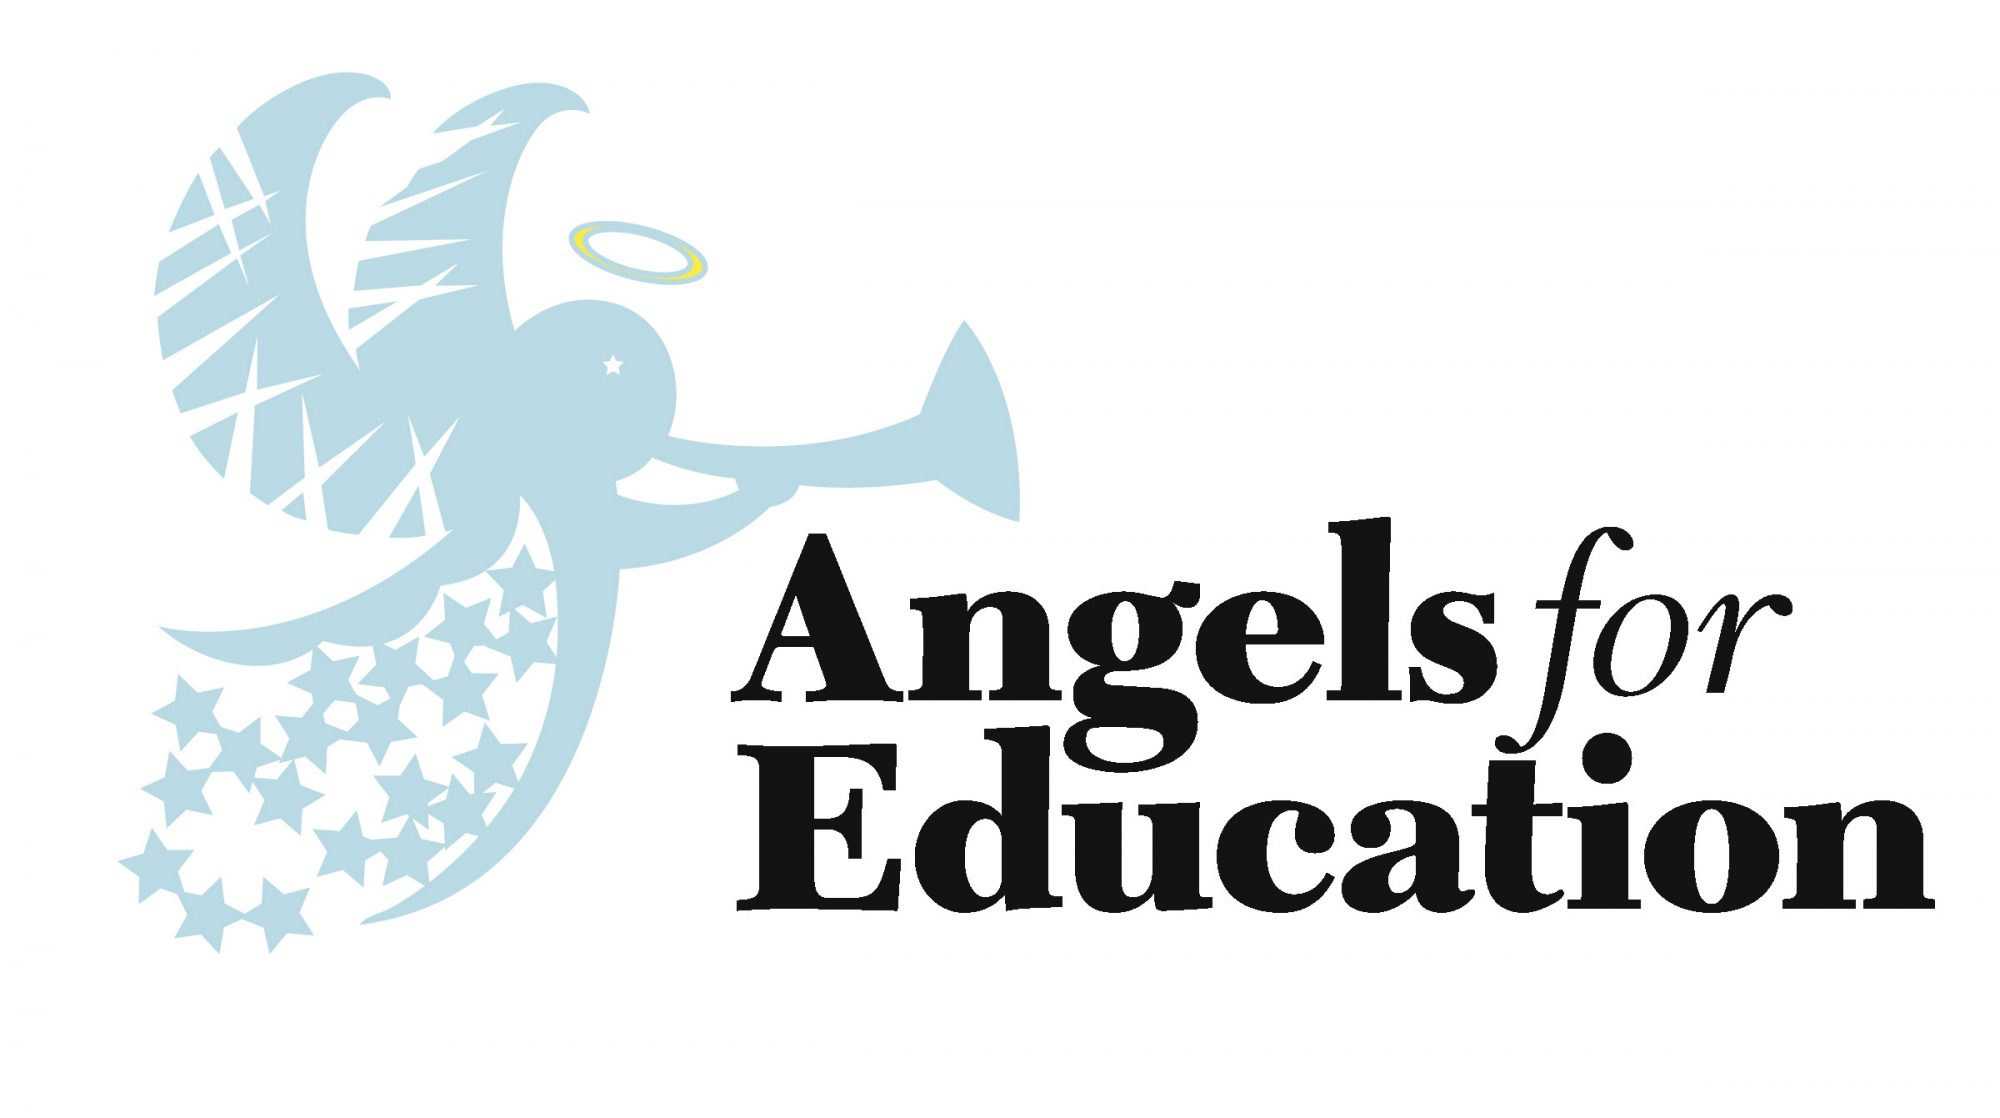 Angels for Education Logo Our Lady of Lourdes Catholic School